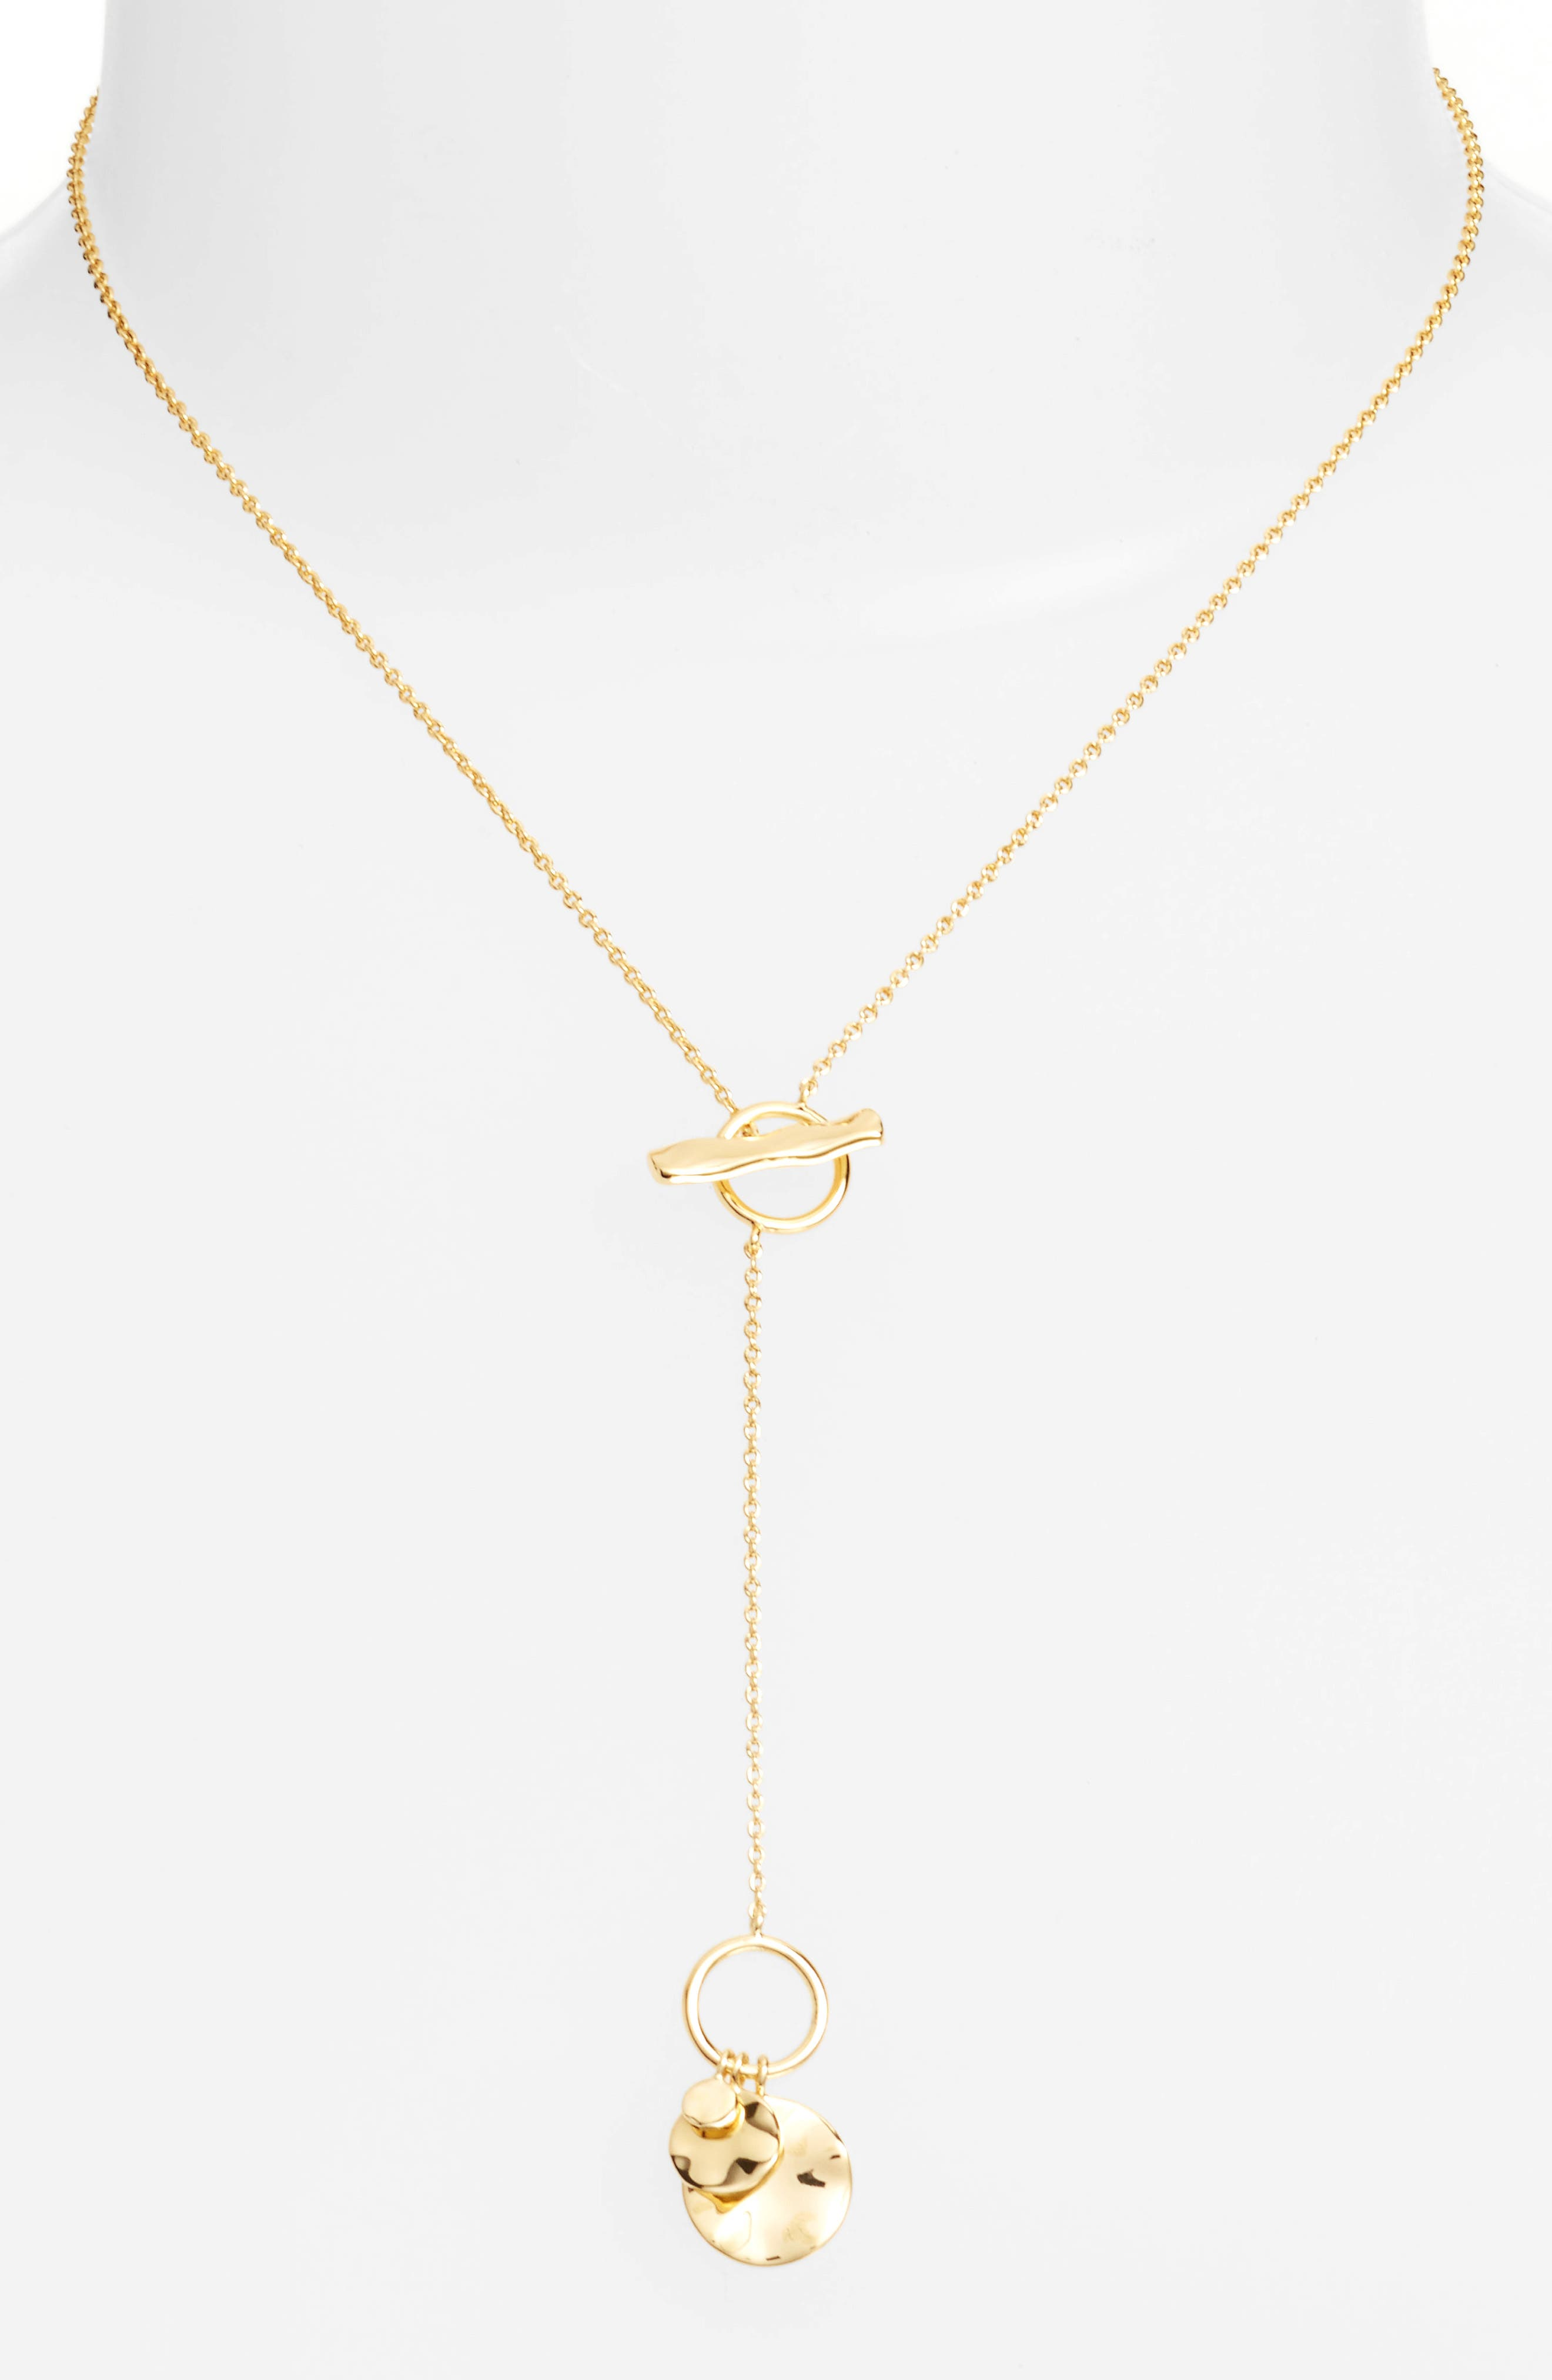 Chloe Small Hammered Disc Toggle Necklace,                         Main,                         color, Gold